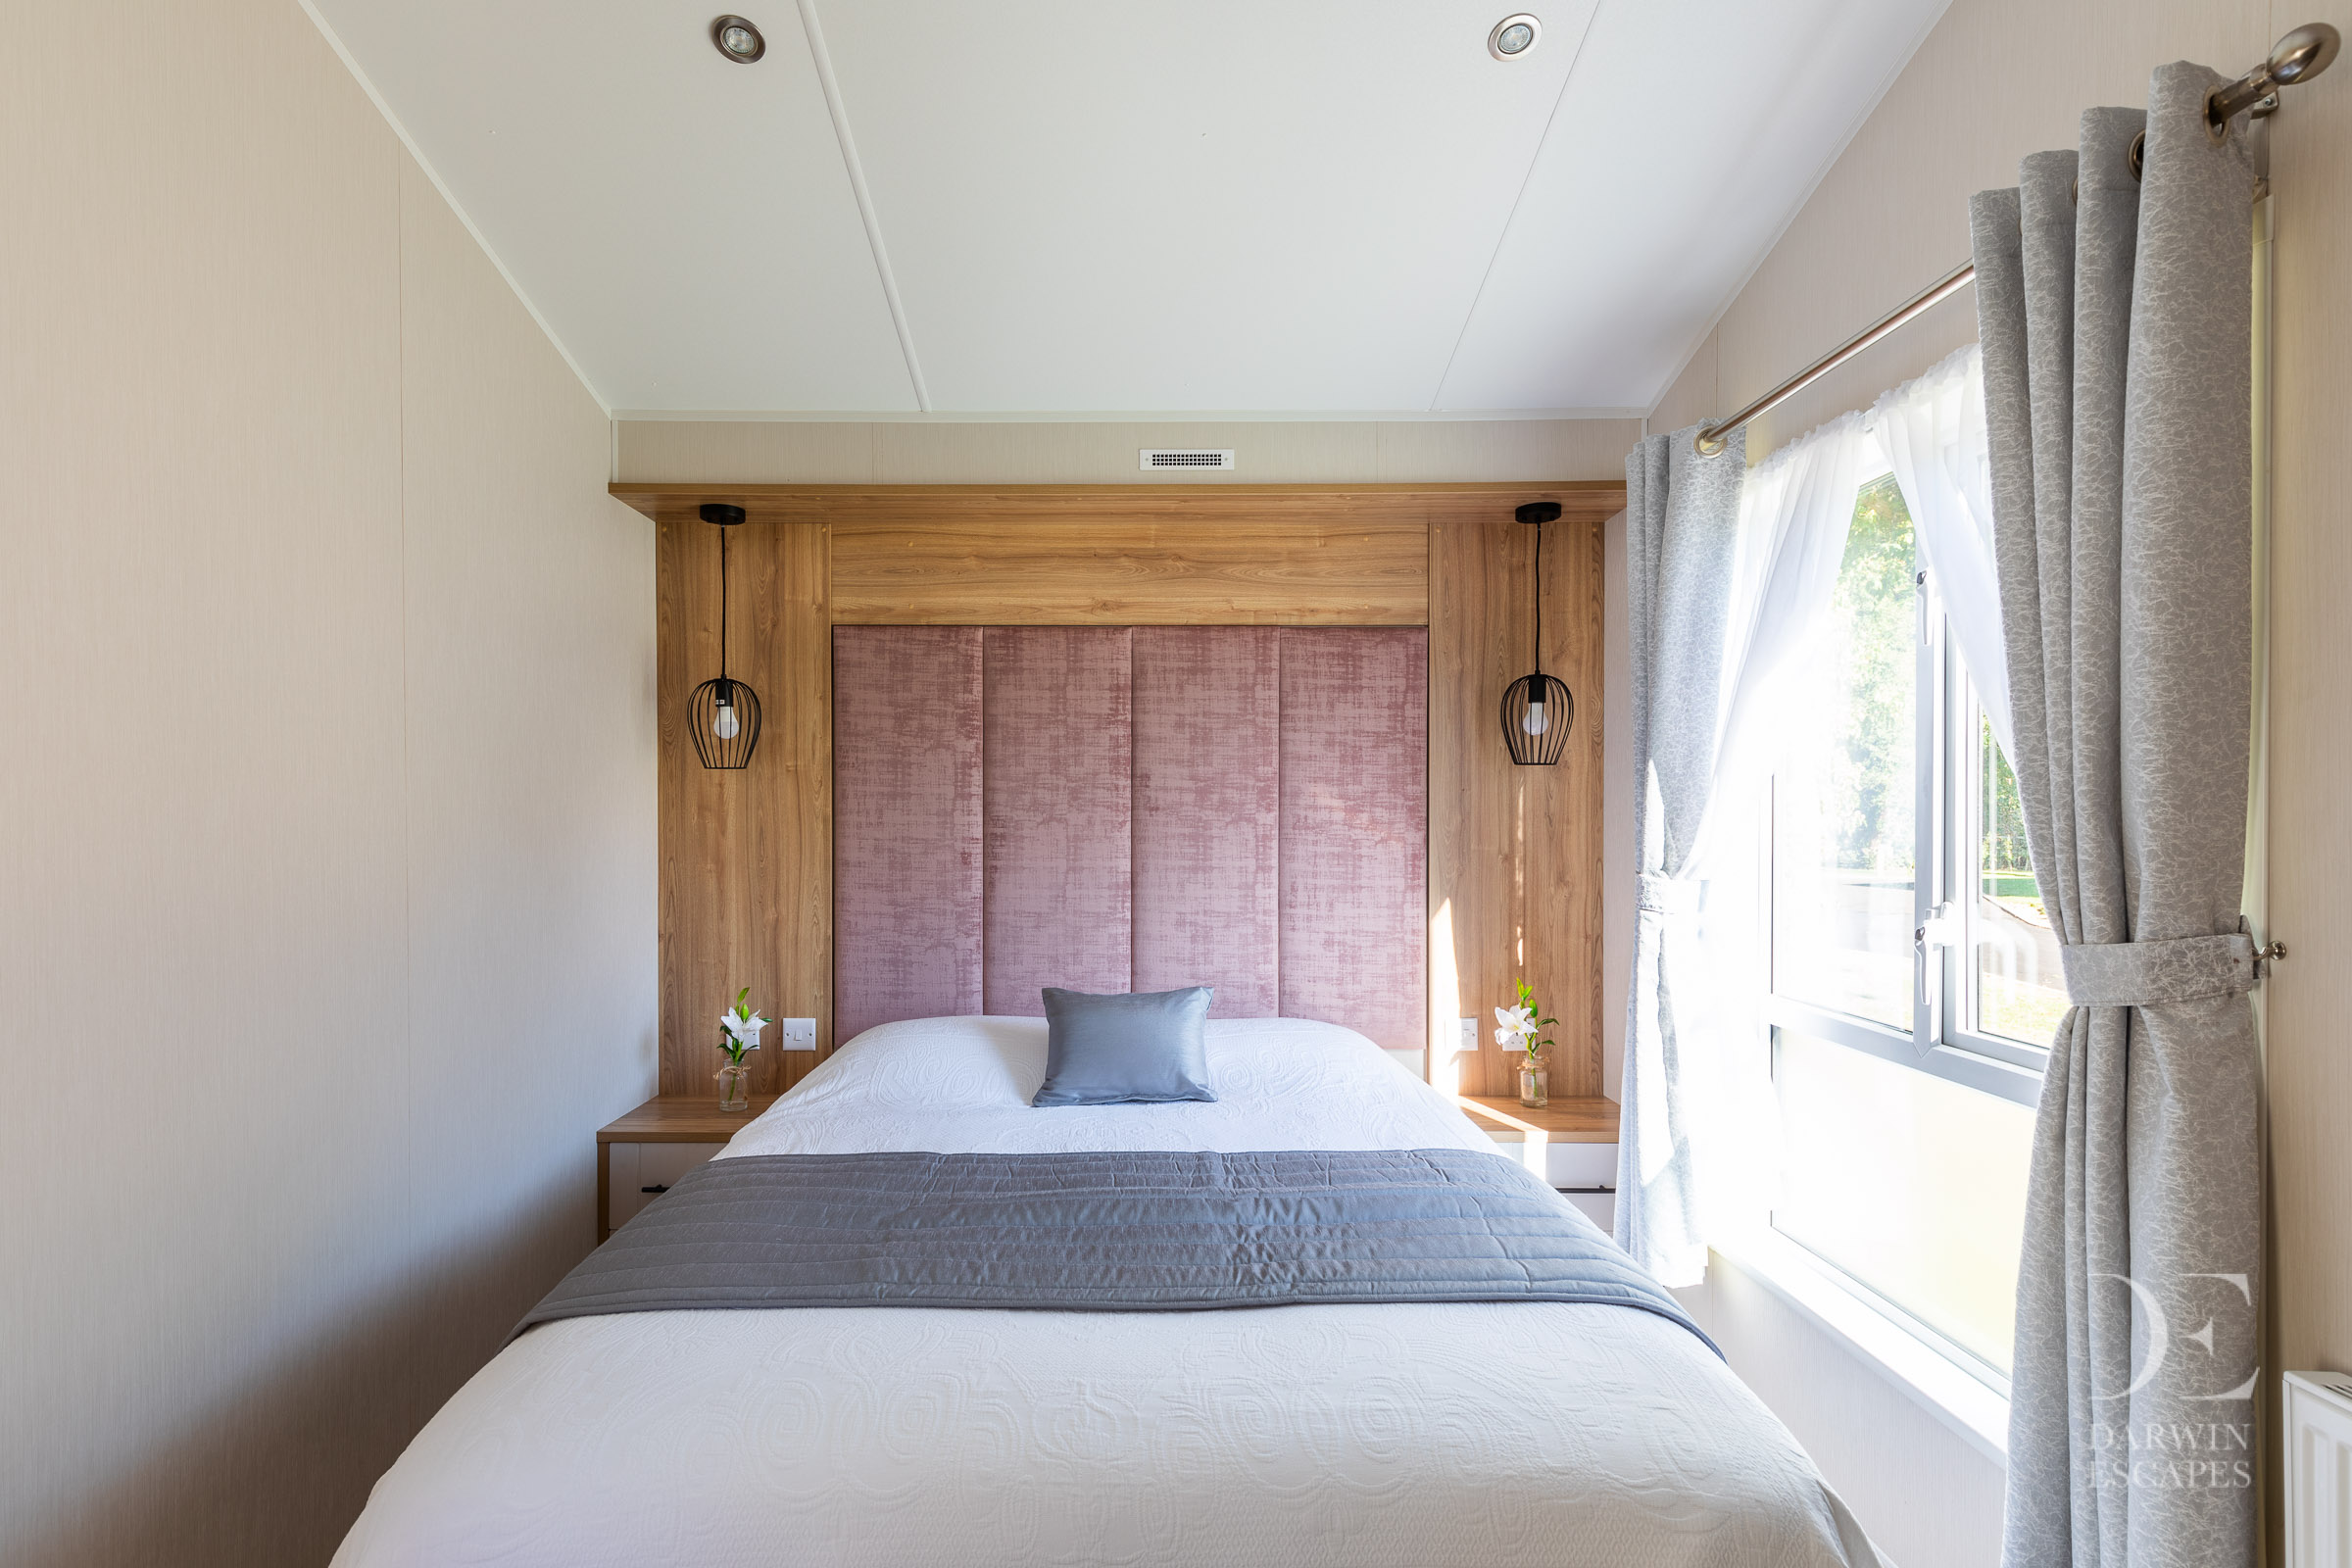 Interior shot of the master bedroom in the Willerby Waverley